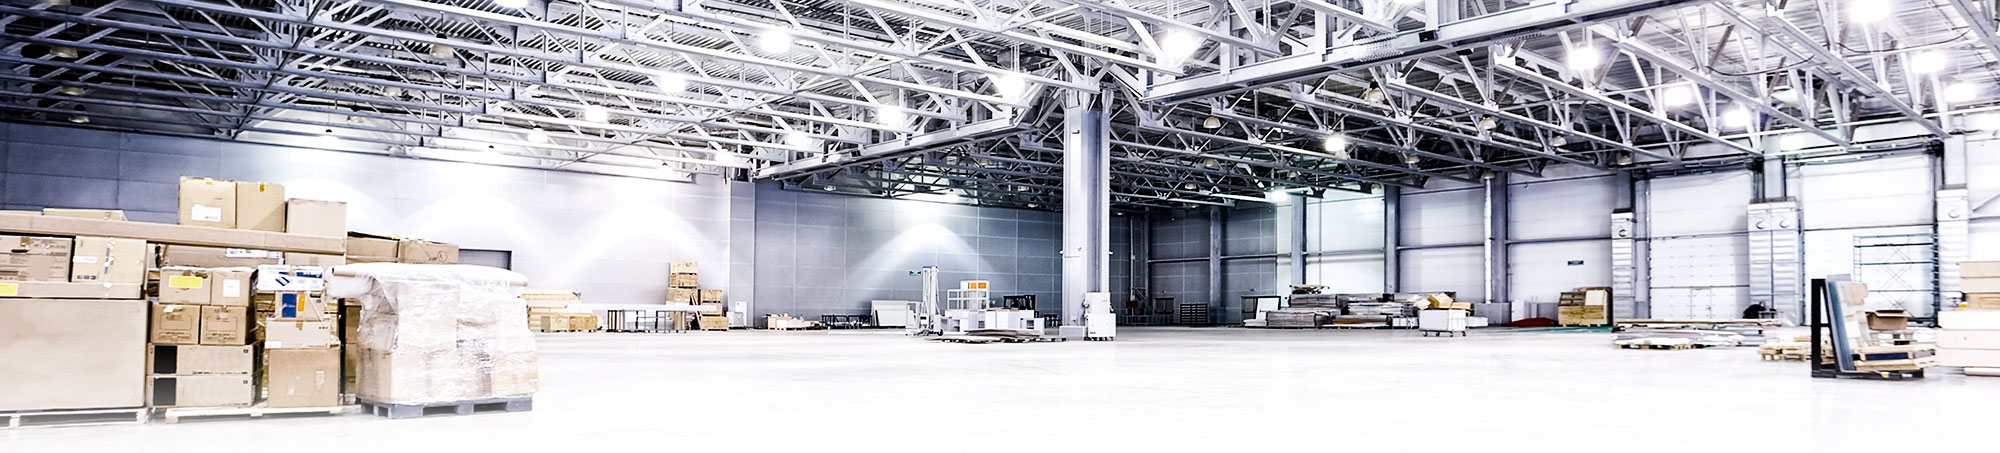 Fimag LED Industriebeleuchtung